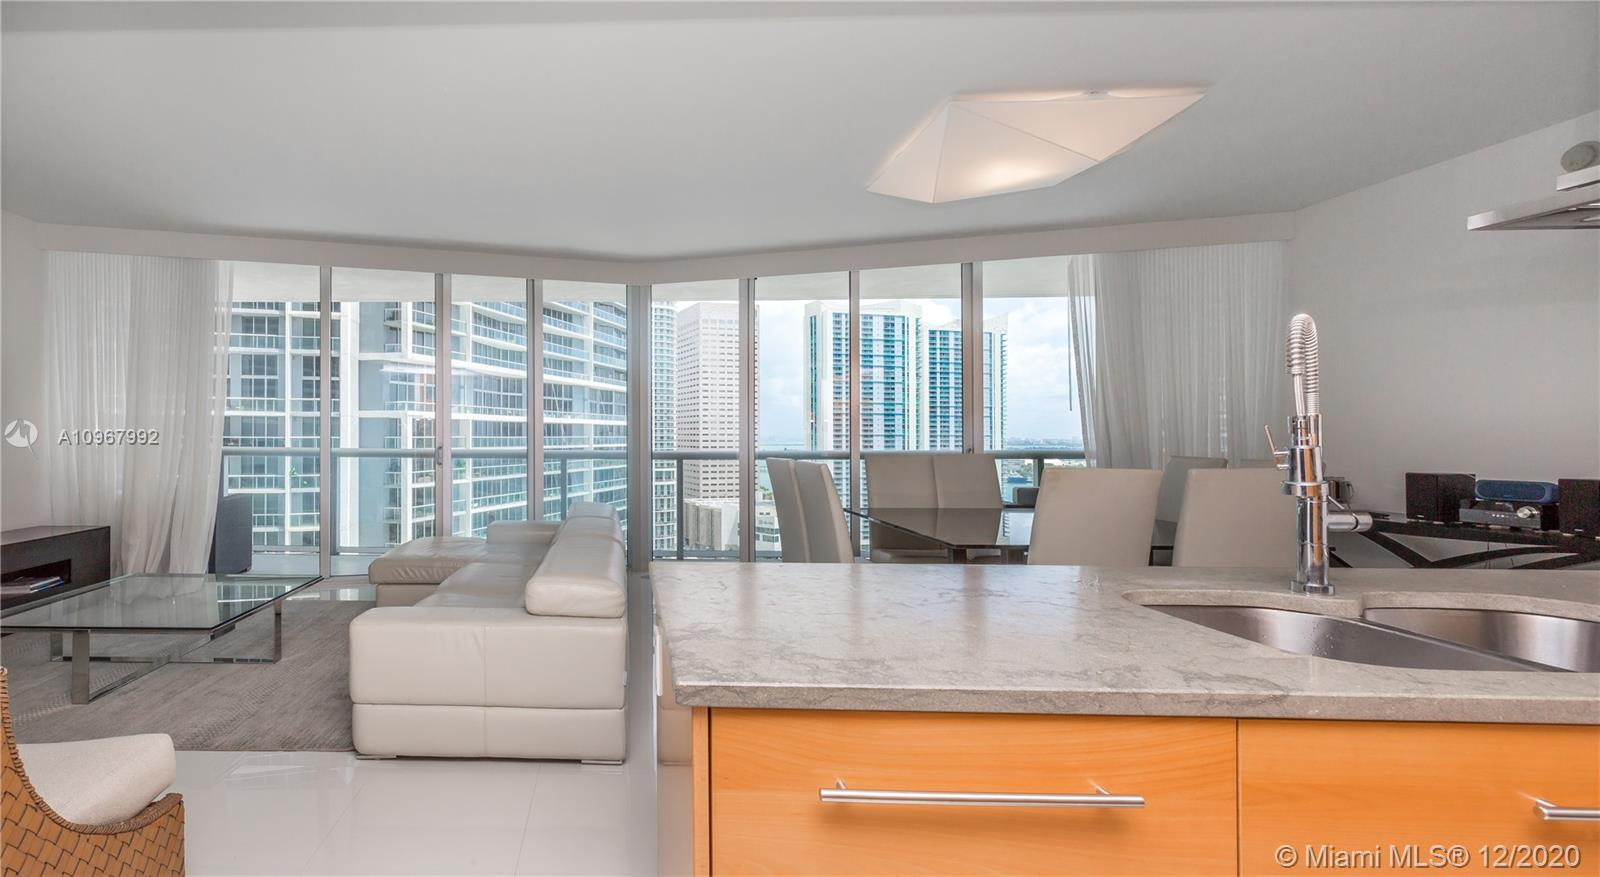 Icon Brickell 2 #2104 - 495 Brickell Ave #2104, Miami, FL 33131